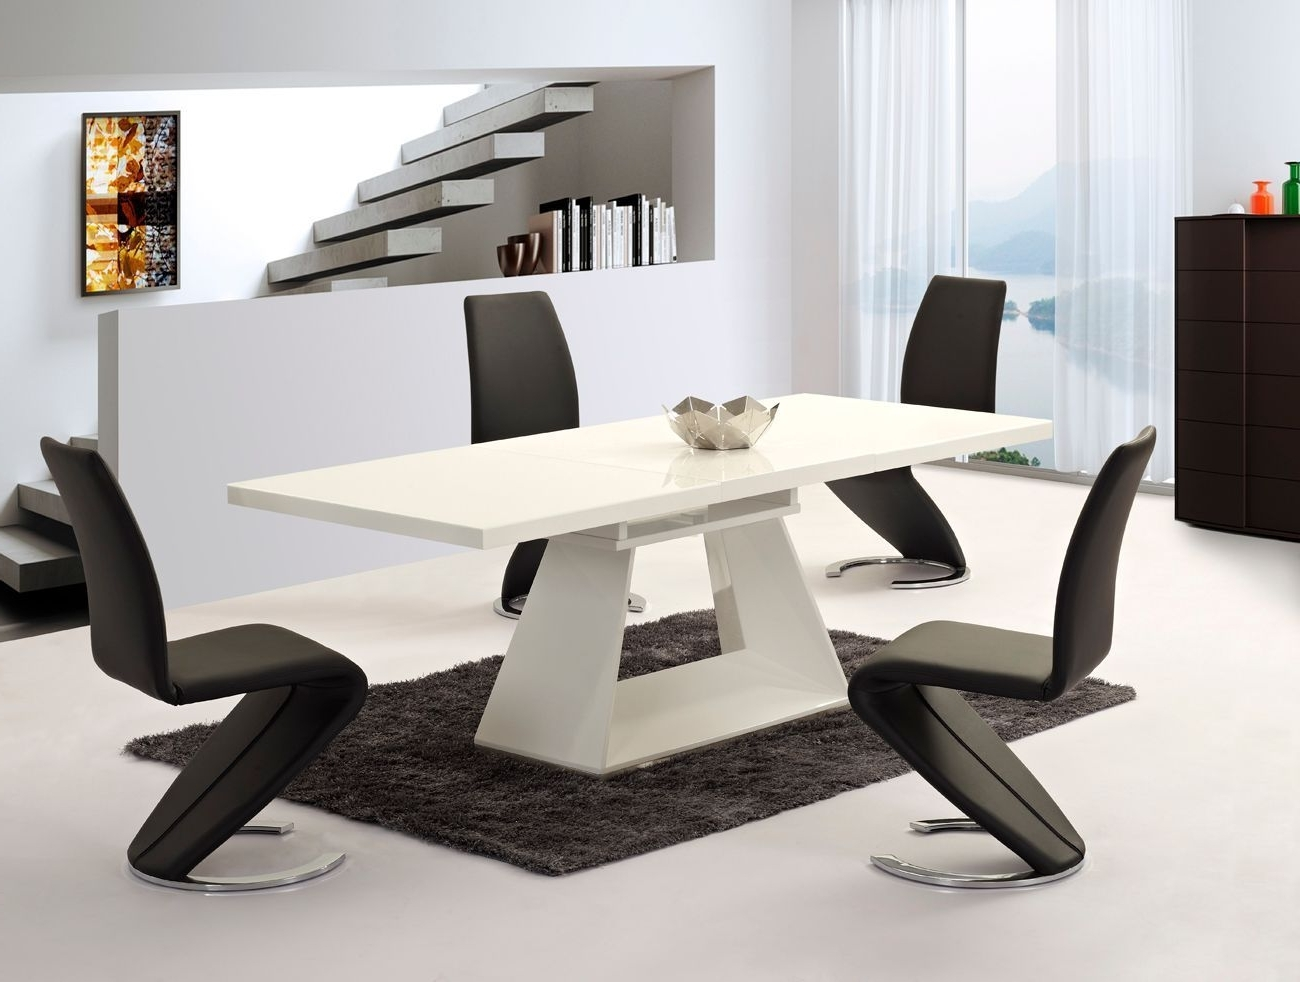 Black Extendable Dining Tables Sets With Regard To 2017 21 Extending Dining Table Sets Uk, Salou Small Extending Dining (View 5 of 25)